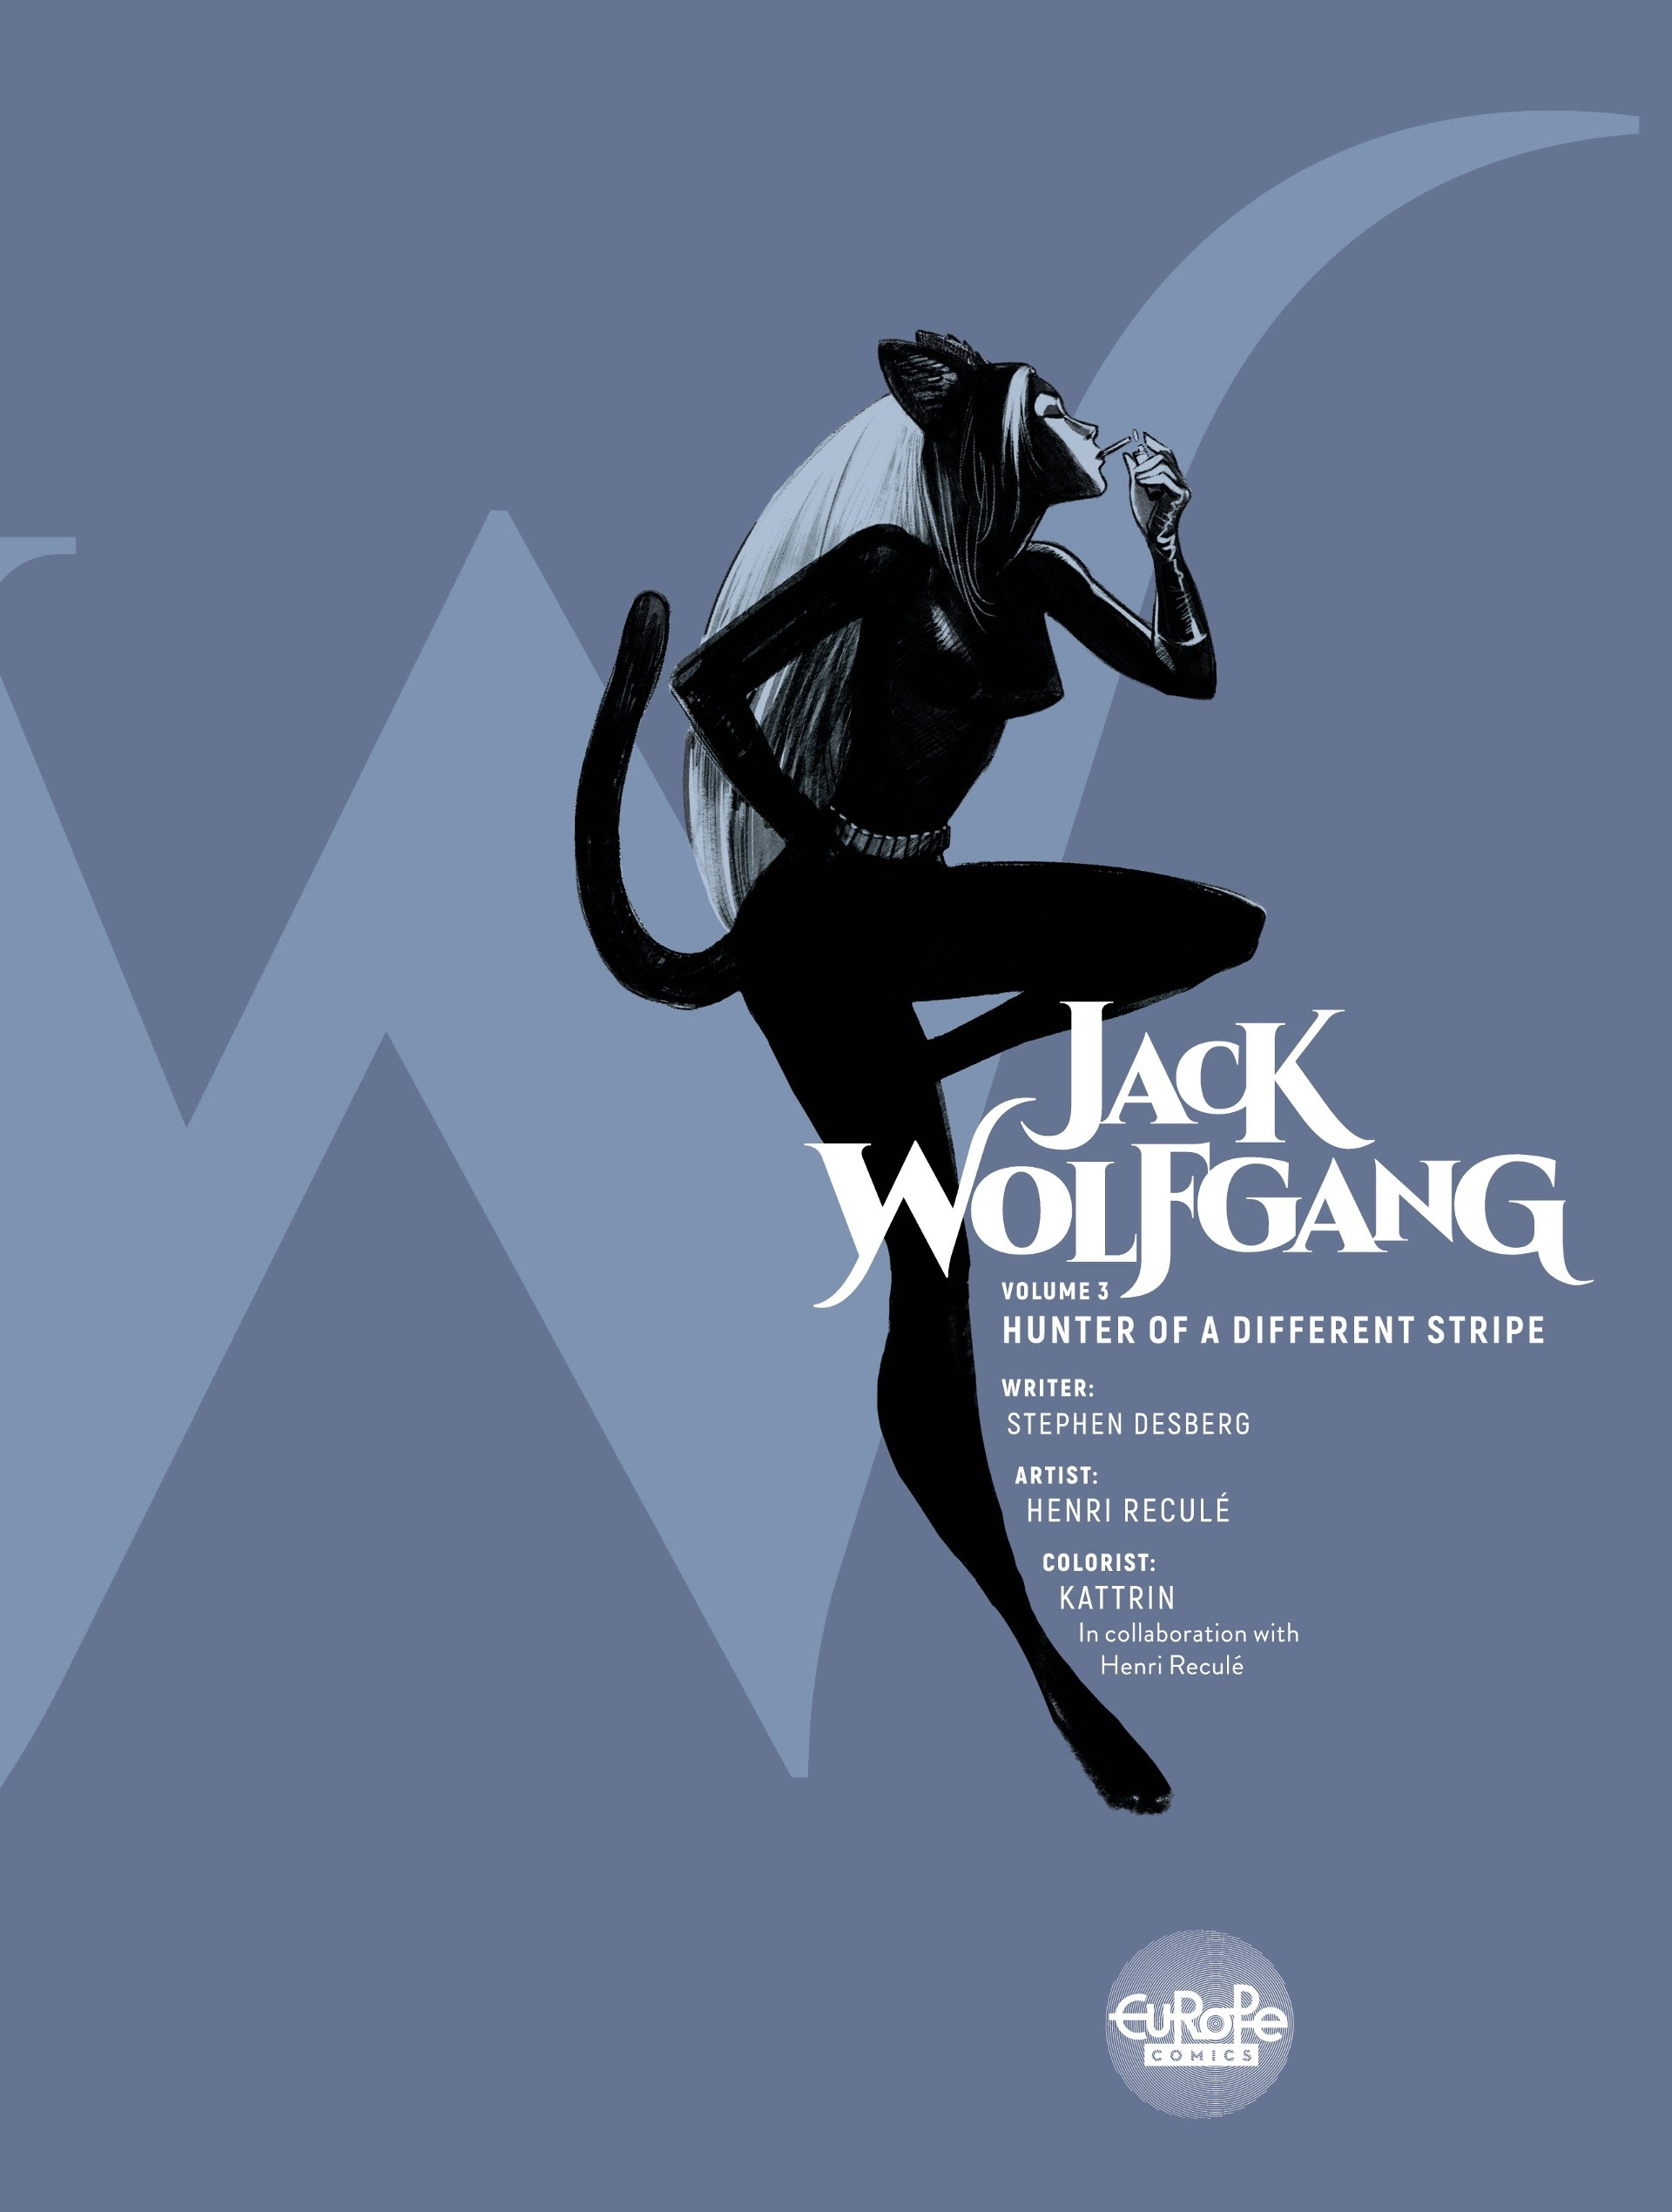 Read online Jack Wolfgang comic -  Issue #3 - 3